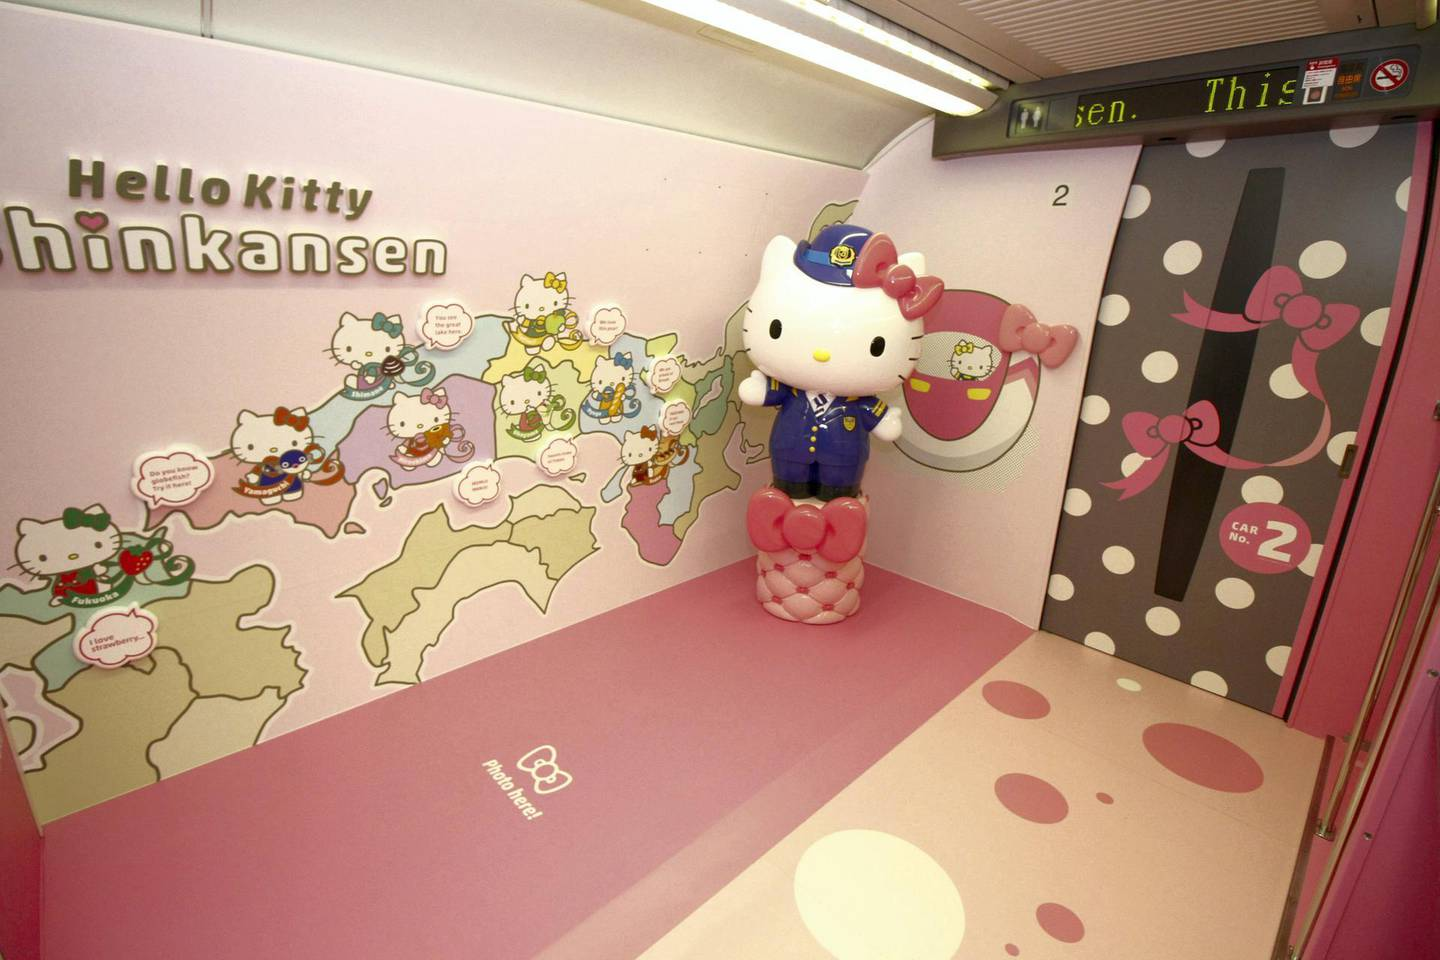 """This handout picture taken on June 25, 2018 and released by West Japan Railway on June 26, 2018 shows a photo spot inside a Shinkansen train for passengers to pose with popular character Hello Kitty, as seen at the Hakata car maintenance center in Fukuoka prefecture. Resplendent in shocking pink, a sleek """"Hello Kitty"""" bullet train, complete with special carriages festooned with images of the global icon from Japan, has been unveiled before chugging into service this week starting June 25. / AFP PHOTO / West Japan Railway / Handout / -----EDITORS NOTE --- RESTRICTED TO EDITORIAL USE - MANDATORY CREDIT """"AFP PHOTO / West Japan Railway"""" - NO MARKETING - NO ADVERTISING CAMPAIGNS - DISTRIBUTED AS A SERVICE TO CLIENTS - NO ARCHIVES"""